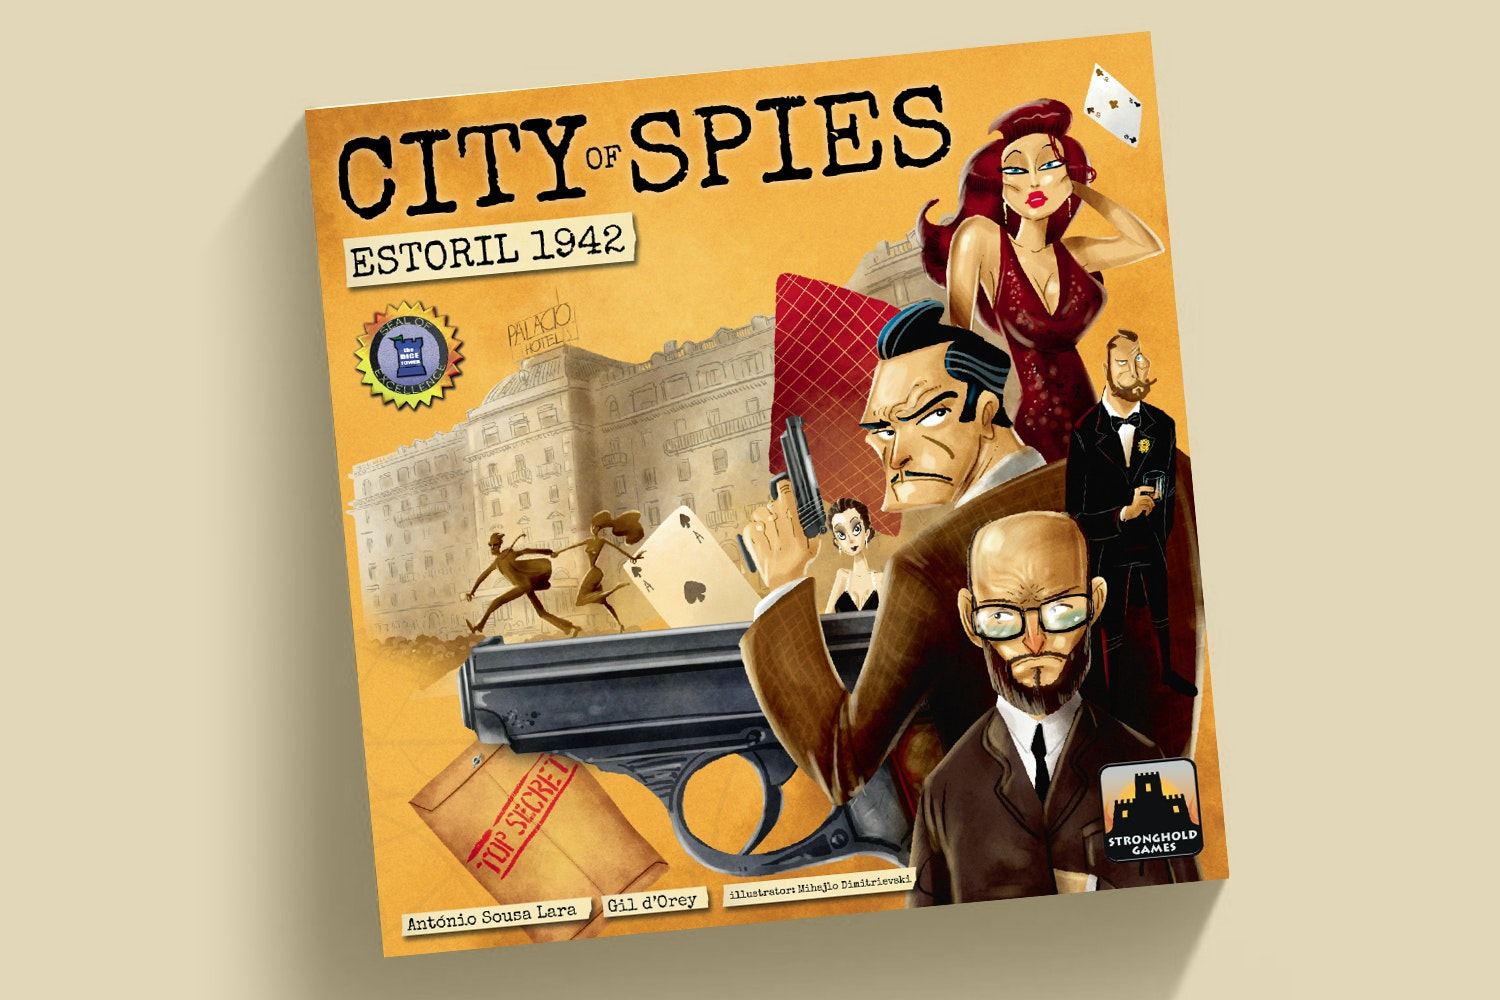 City of Spies: Estoril 1942 Pre-Order